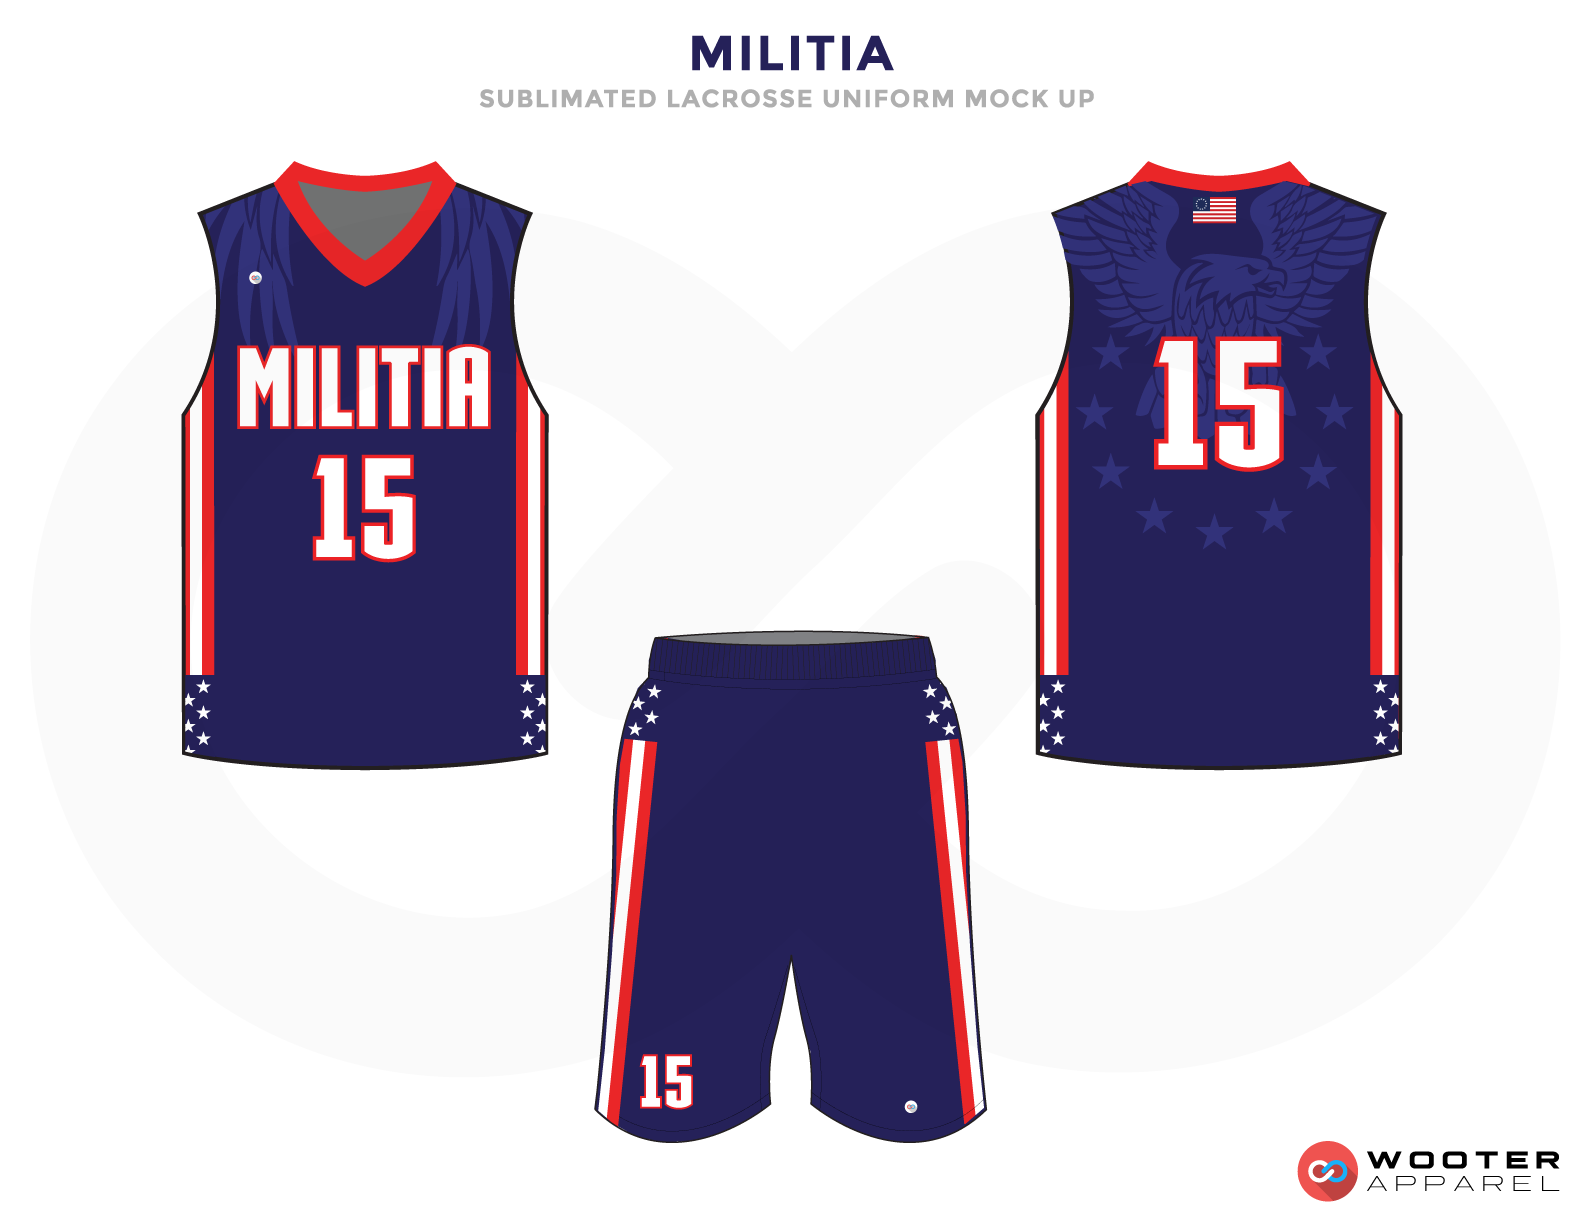 Militia Blue Red and White Lacrosse Uniforms, Reversible Pinnies, Jerseys, Shorts